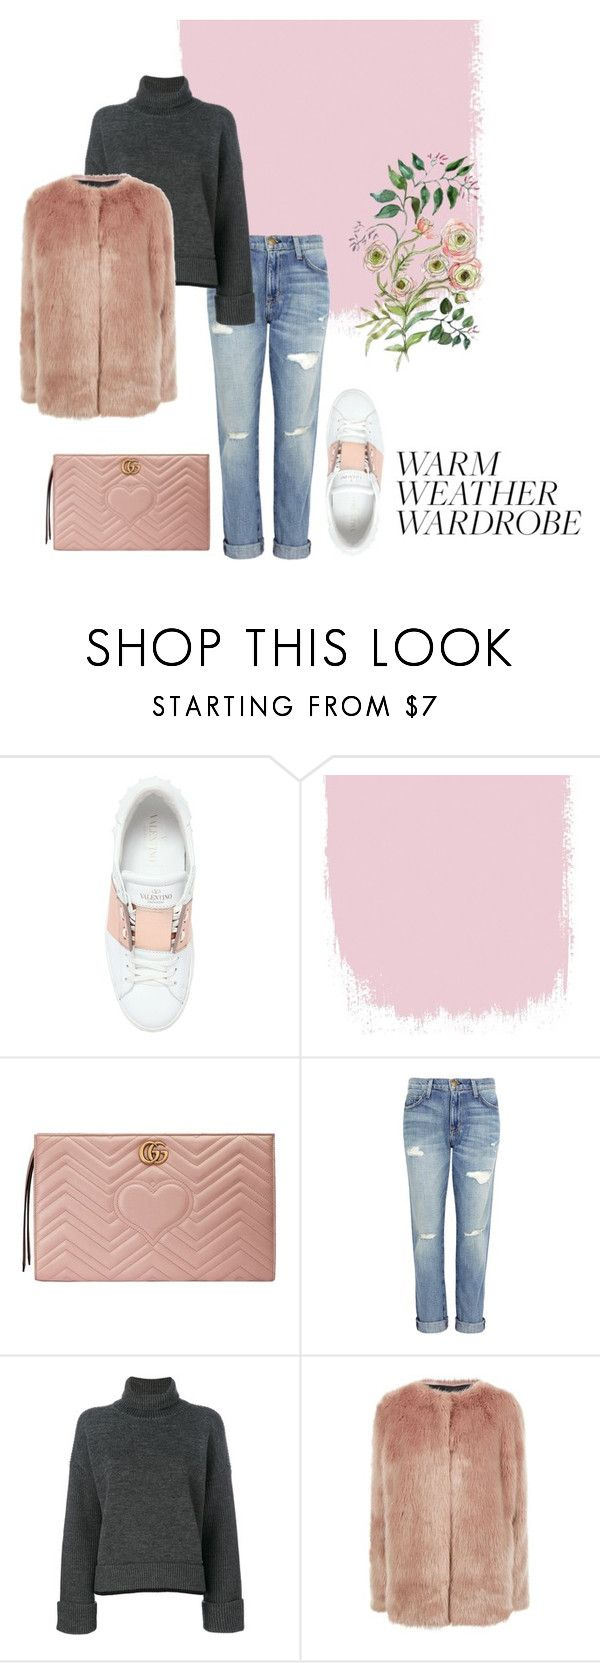 """""""VALENTINO SNEAKERS"""" by yasmingarcia99 on Polyvore featuring Valentino, Gucci, Current/Elliott, Dsquared2 and Pinko"""